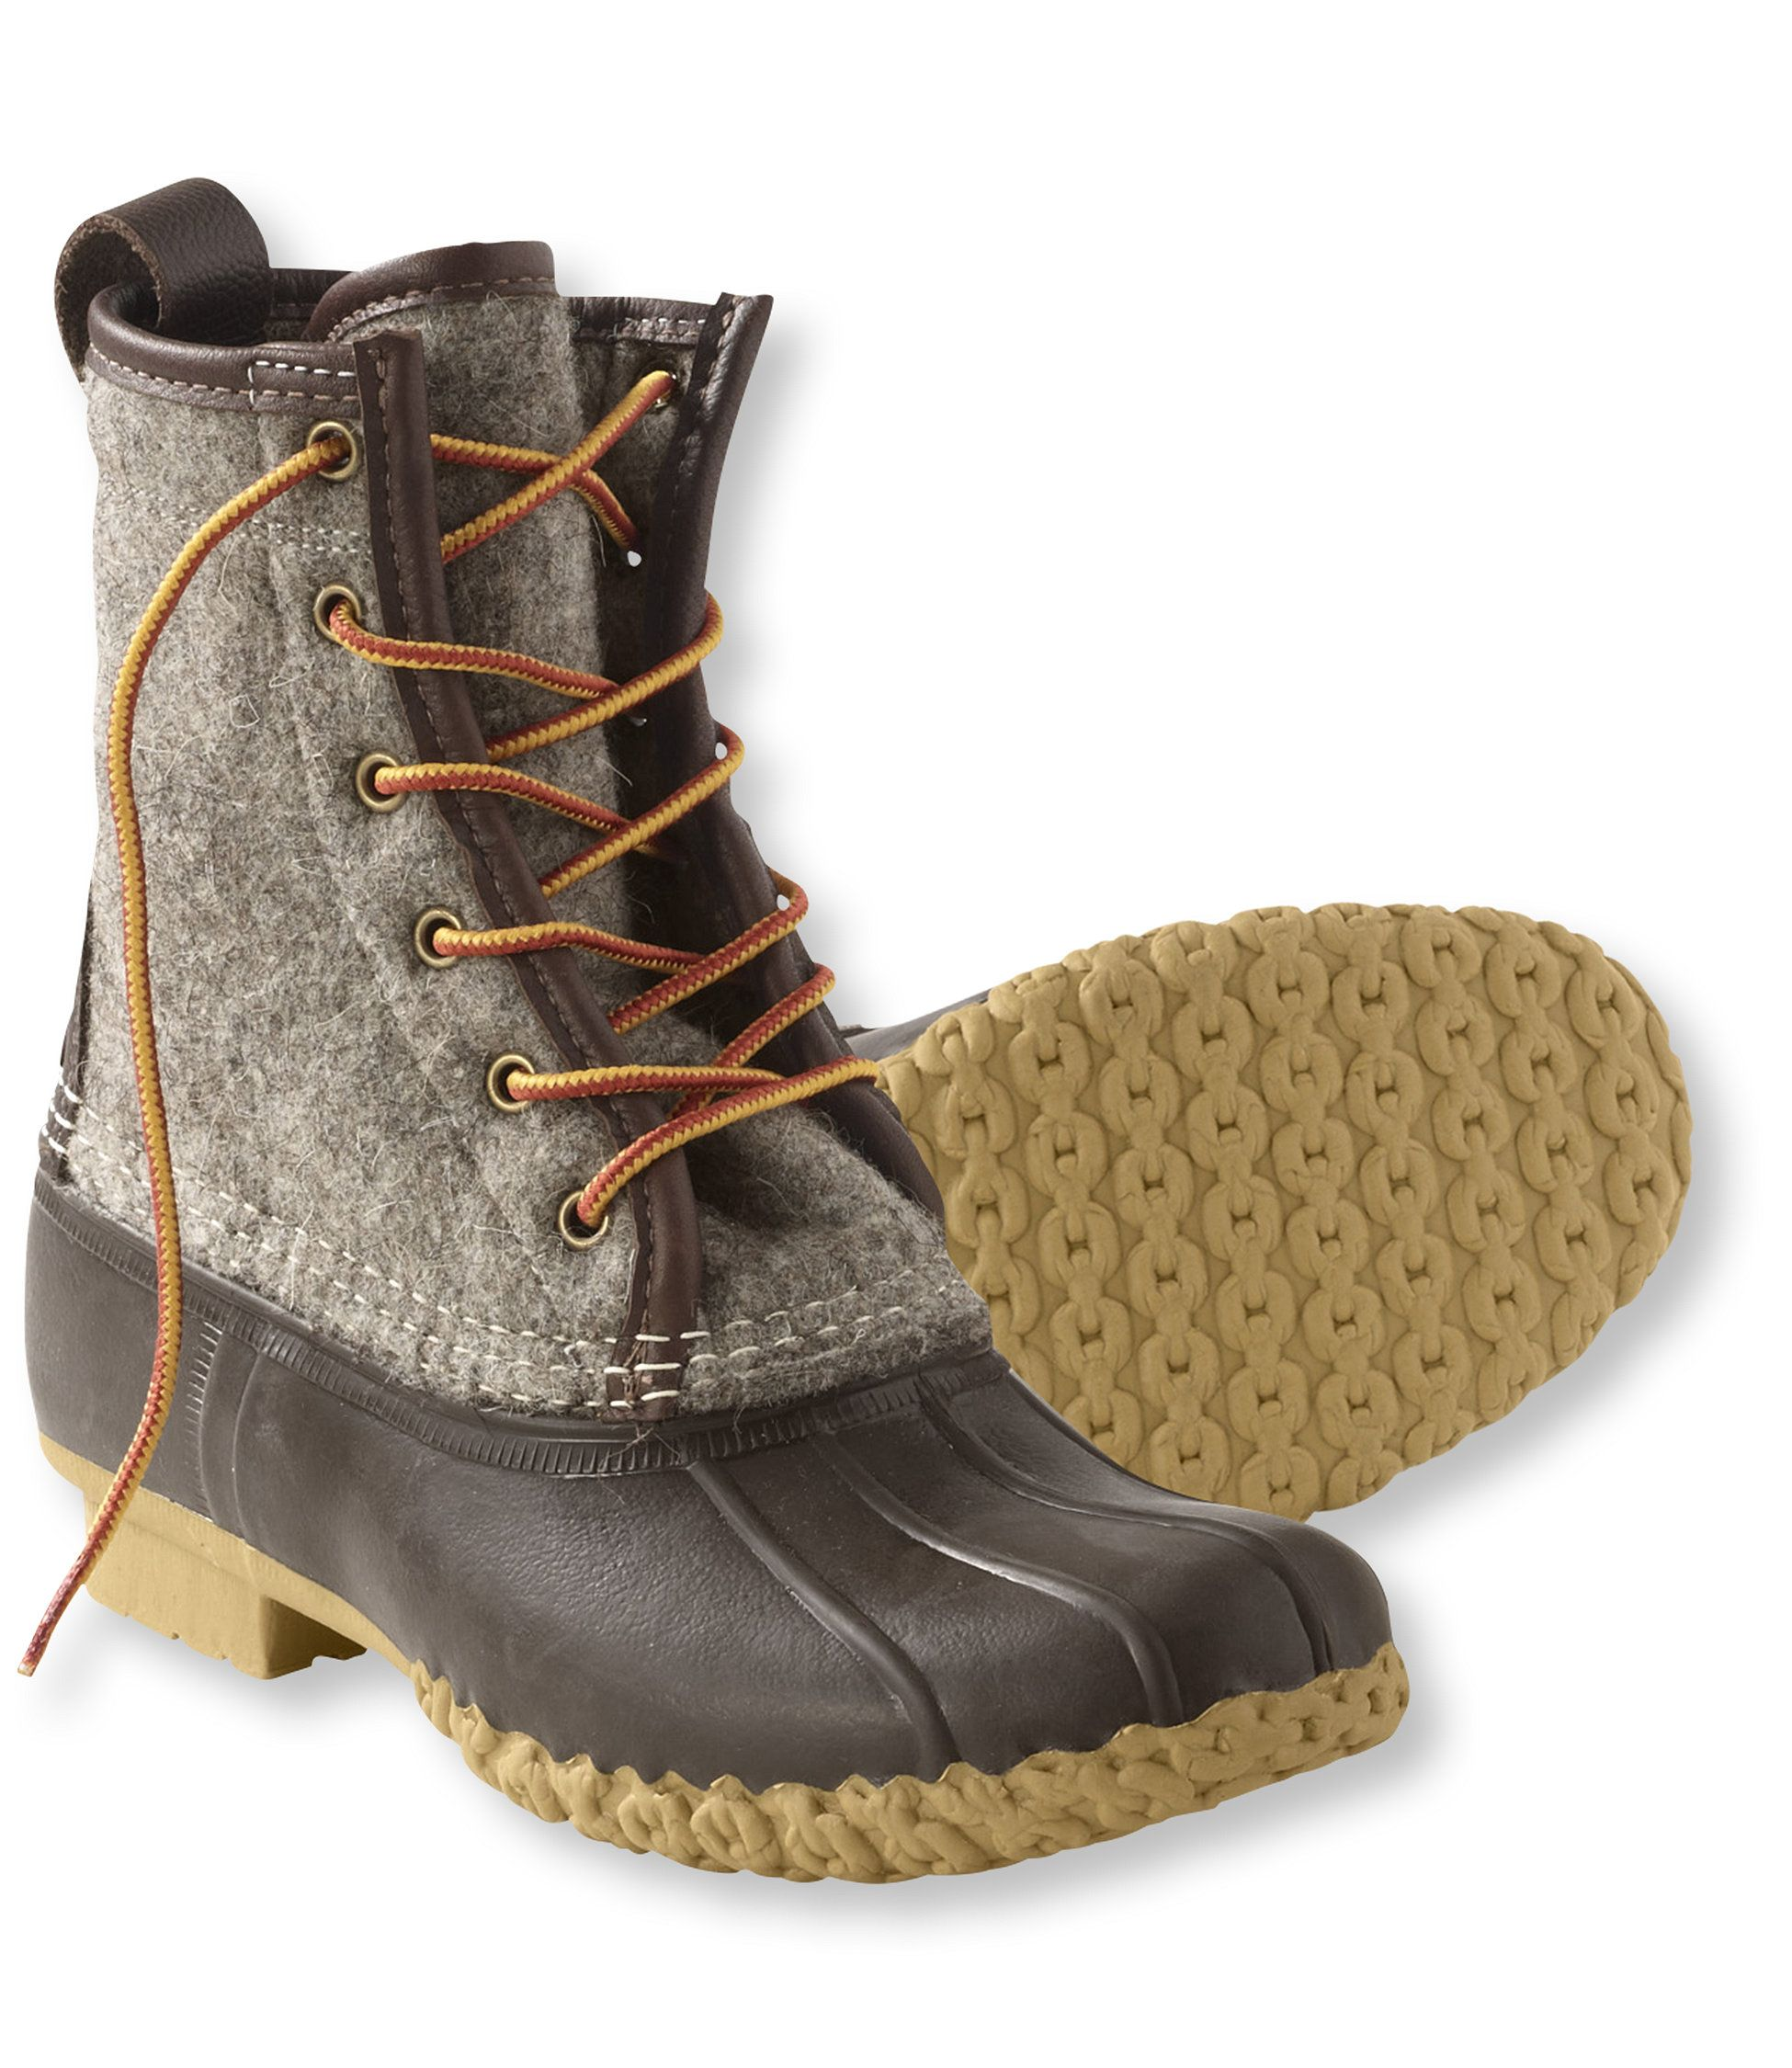 Women's Bean Boot by L.L.Bean felt) - sorry I'm not sorry that I bought  another pair of Bean Boots.